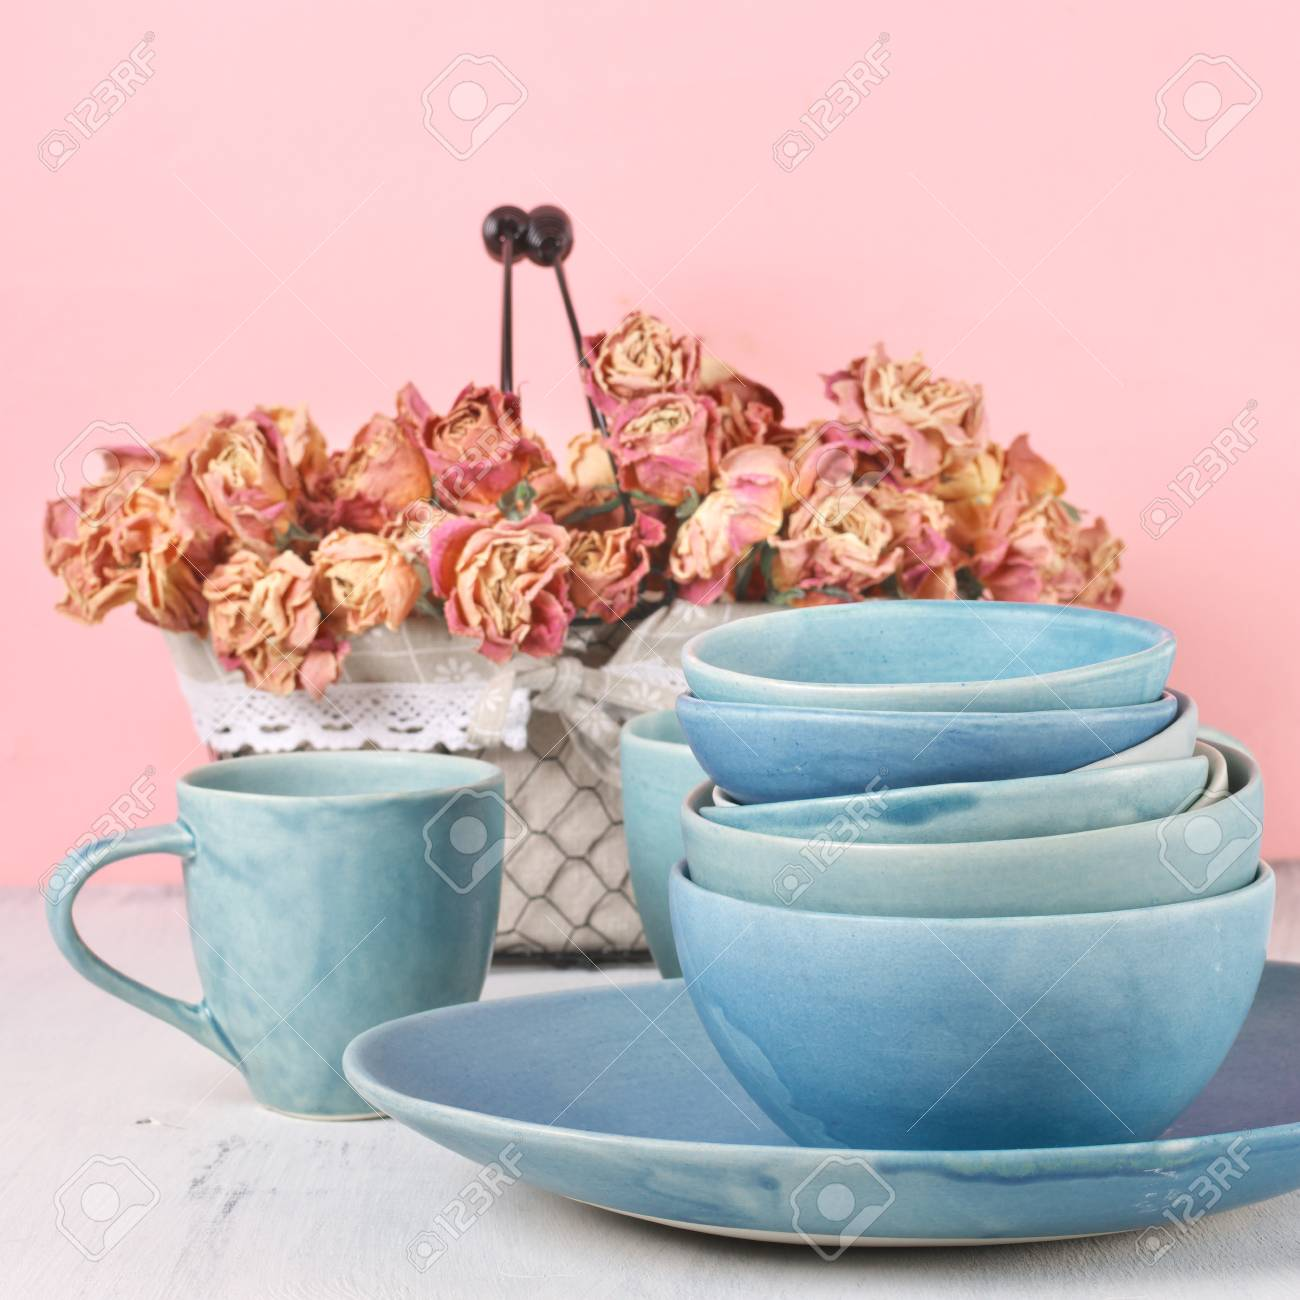 Geschirr Rosen Stock Photo